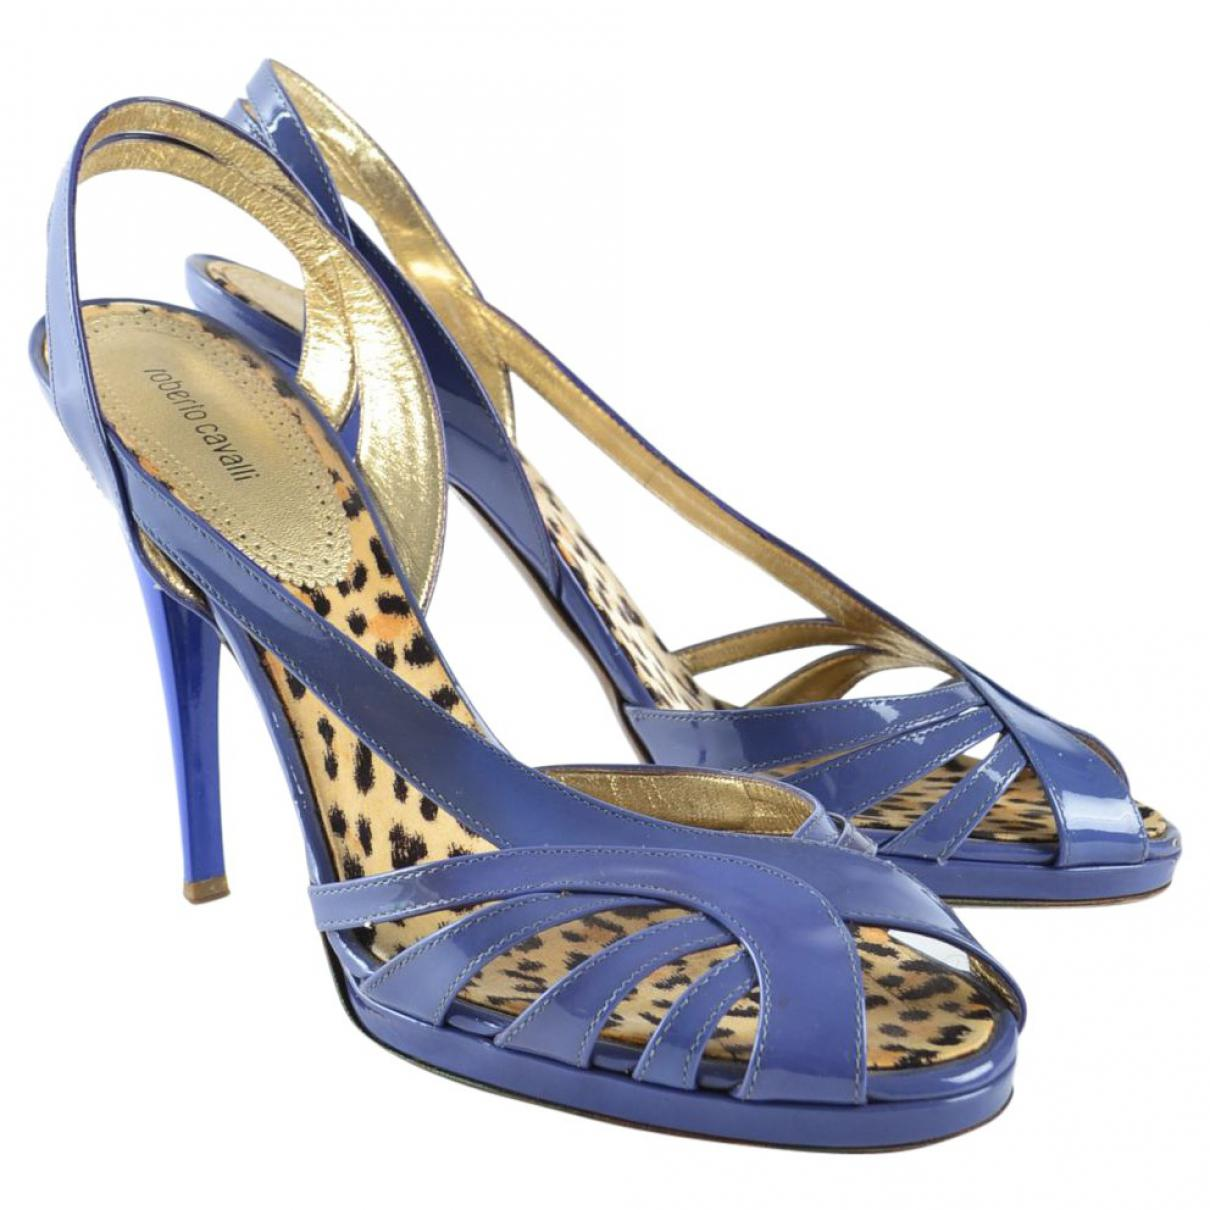 Pre-owned - Sandals Roberto Cavalli Free Shipping 2018 Discounts Cheap Online For Sale Online Cheapest 9i1KCej